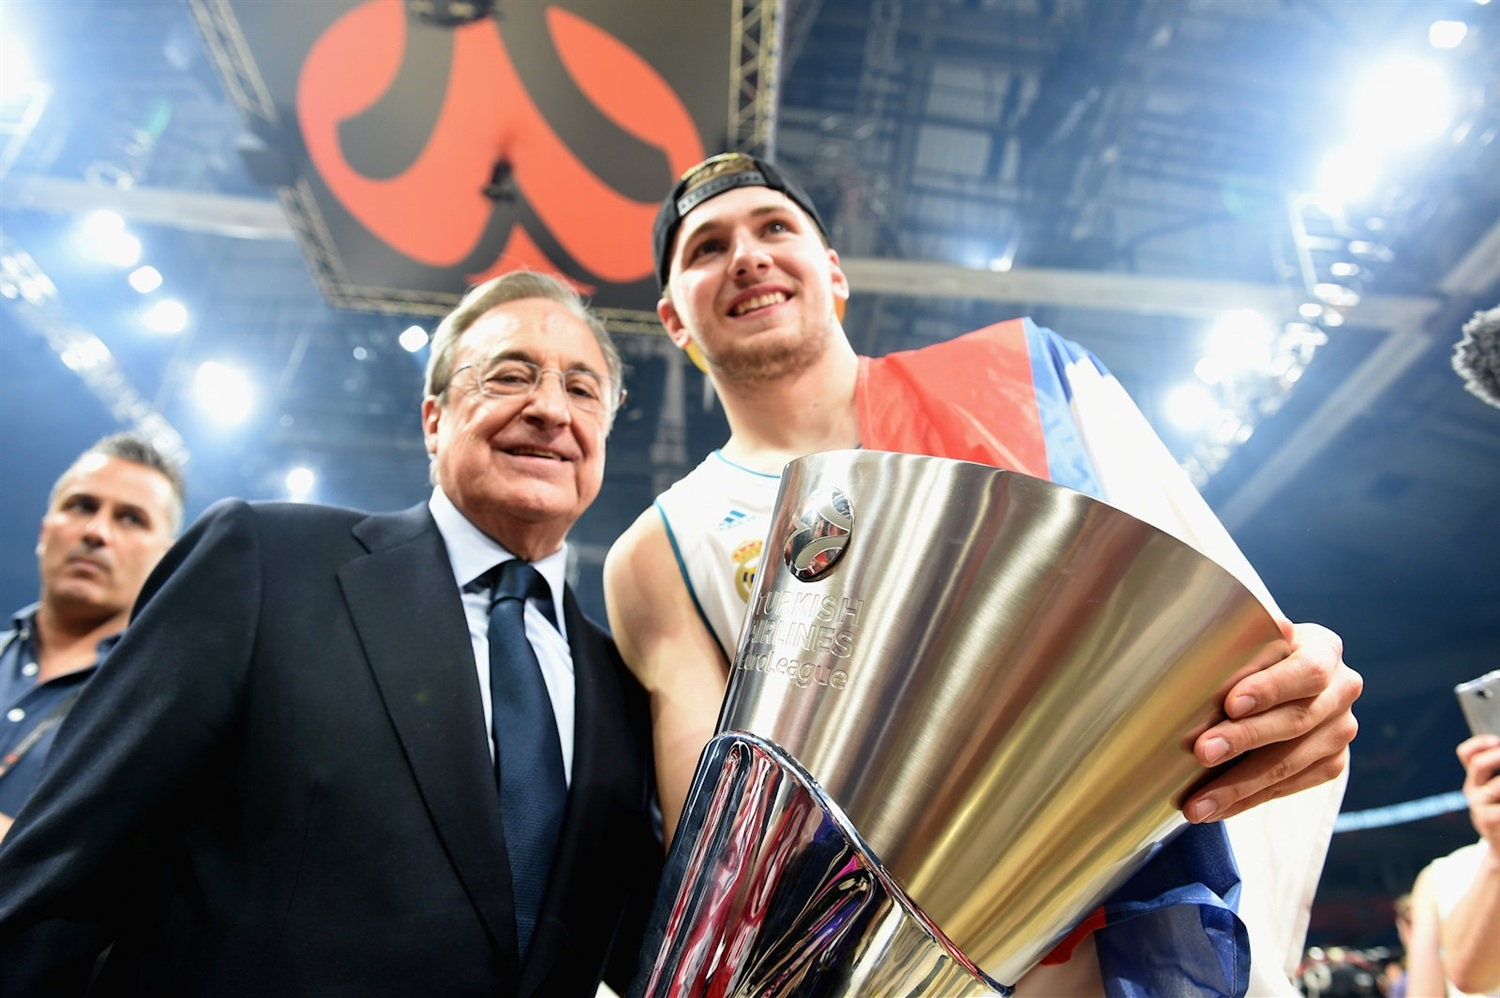 Florentino Perez and Luka Doncic - Real Madrid Champ EuroLeague 2017-18 - Belgrade 2018 - EB17_8r4xjrxxyax6vjw5